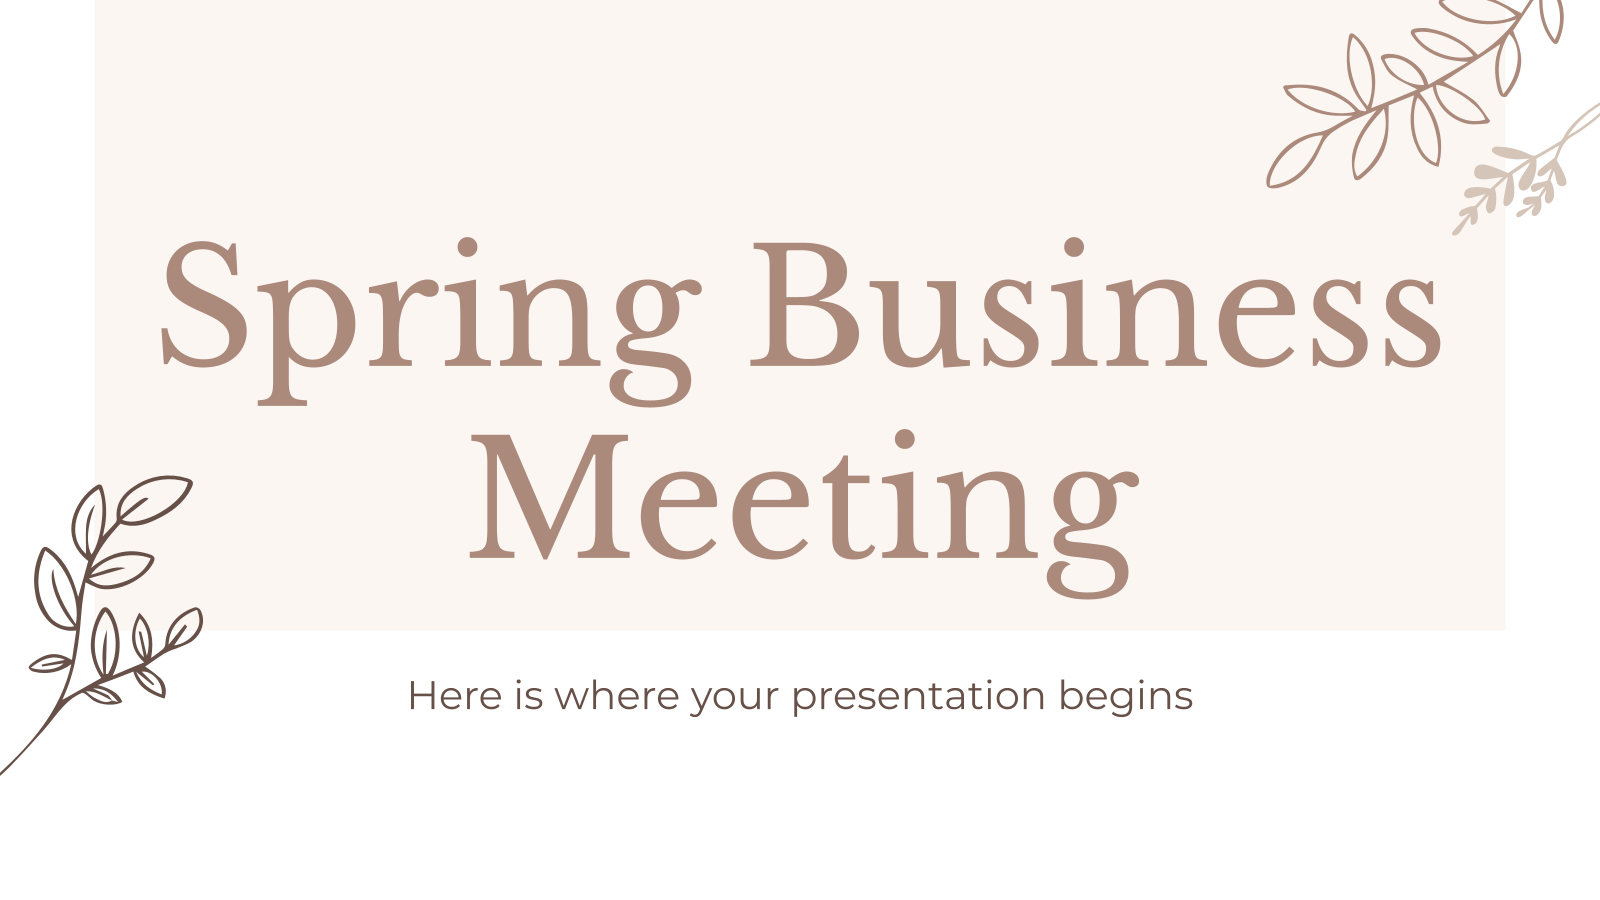 Spring Business Meeting presentation template